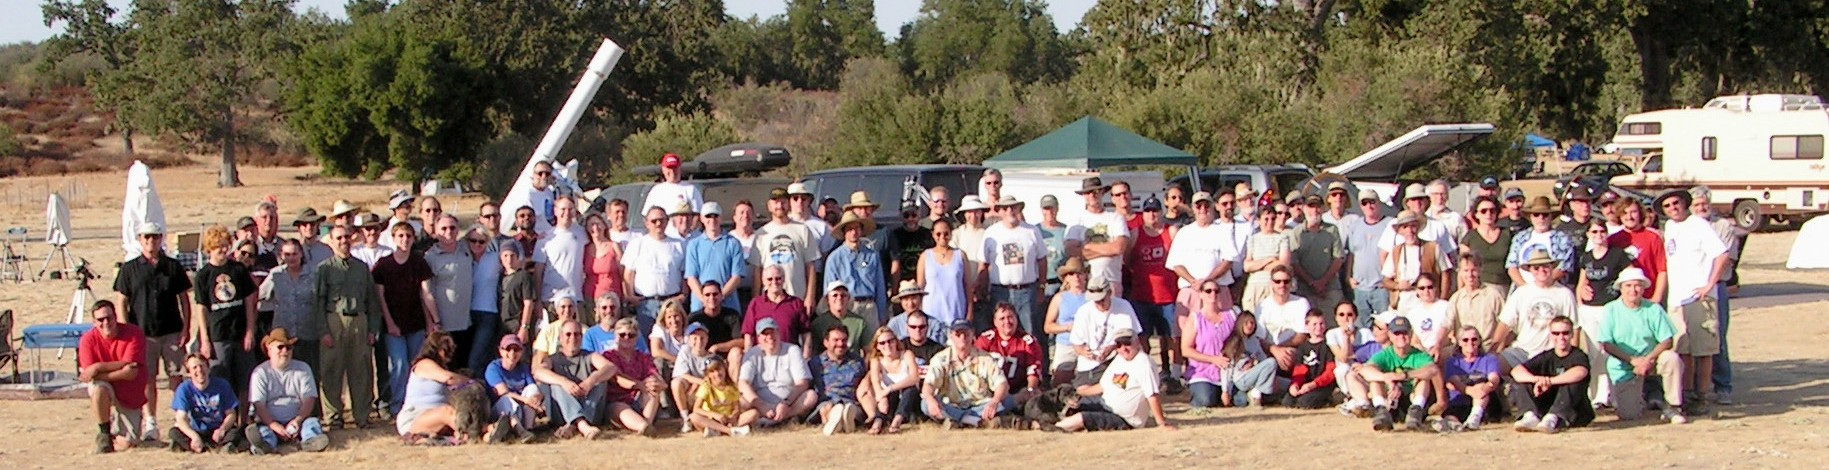 Group Picture - CalStar 2006